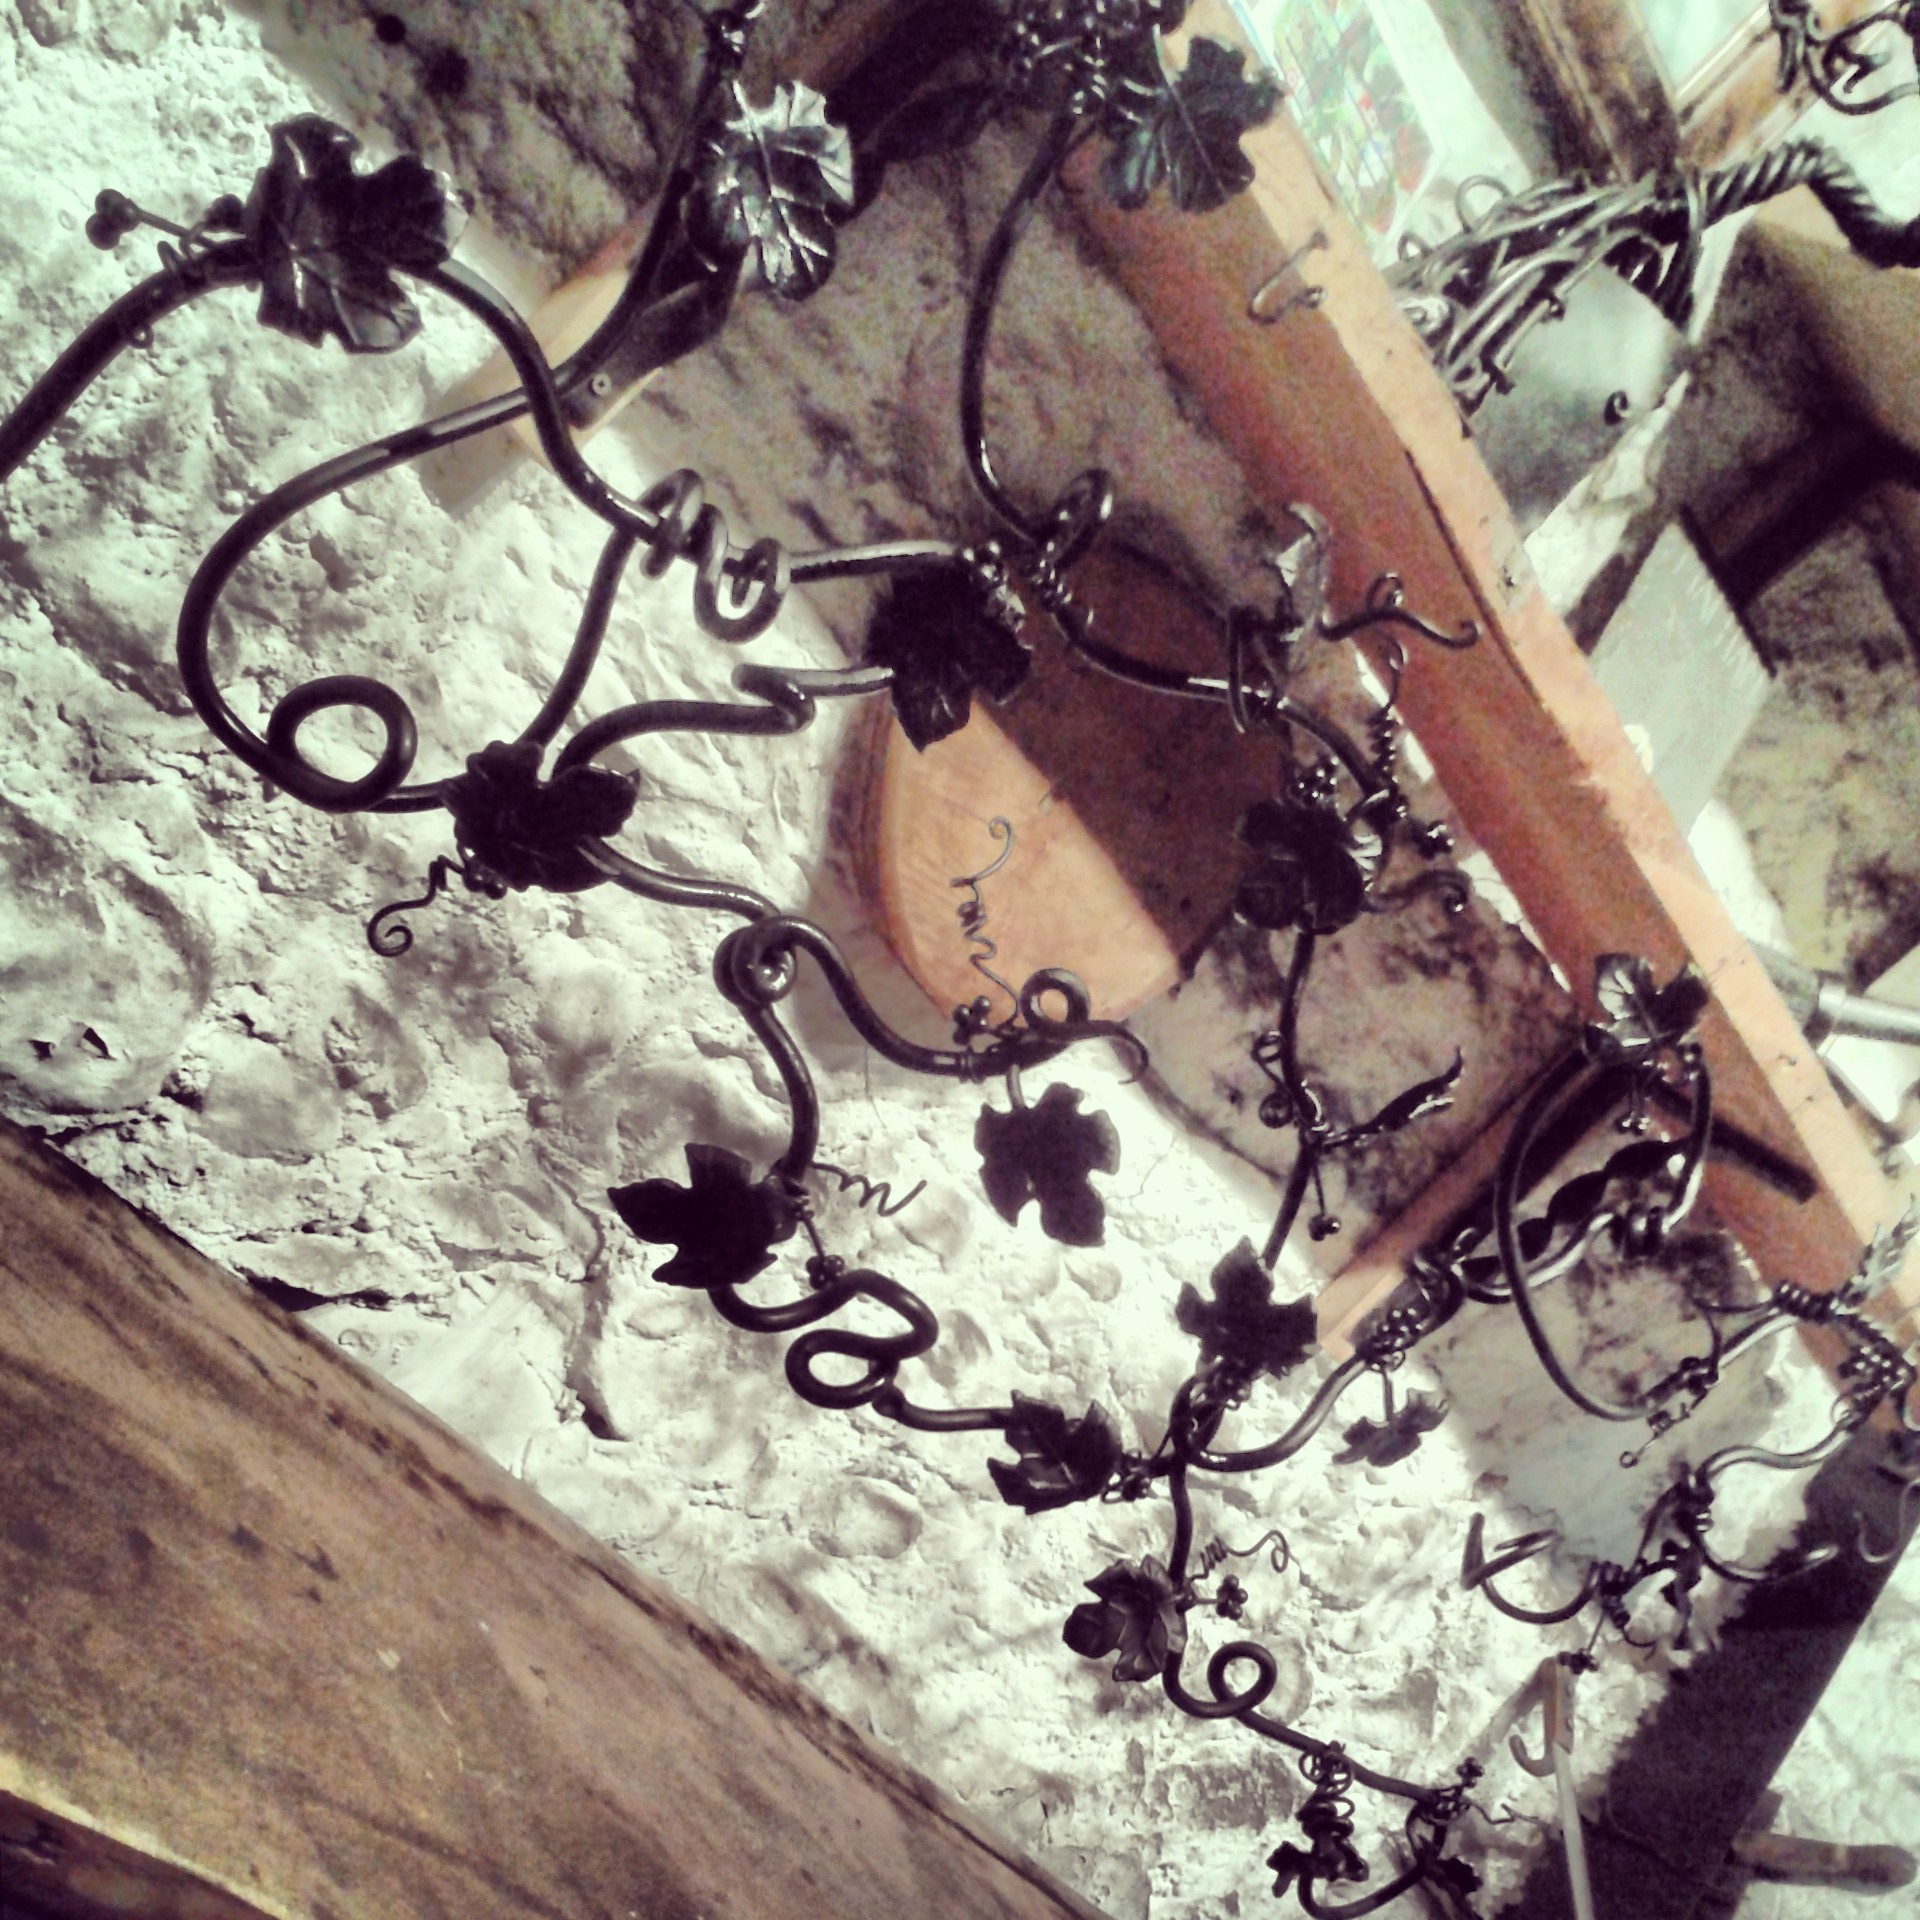 Bespoke bryony vine hat rack, hand forged commission from the Malham Smithy